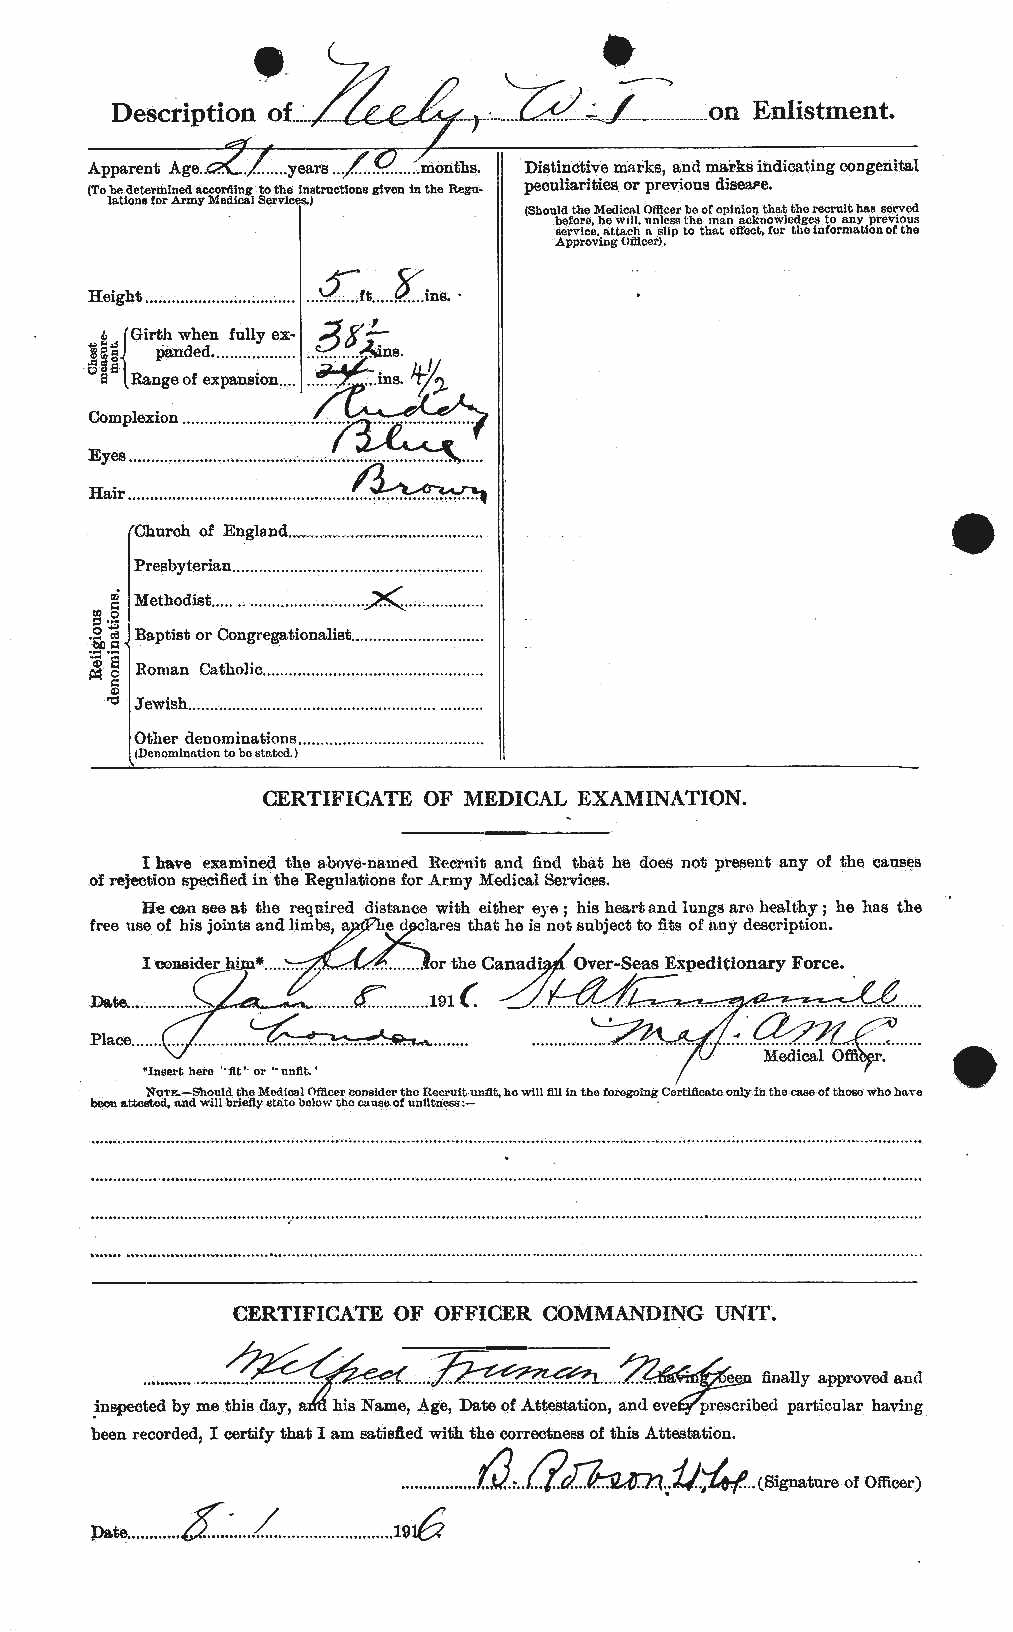 Attestation papers– Certificate of Medication examination for Wilfred Neely's enlistment